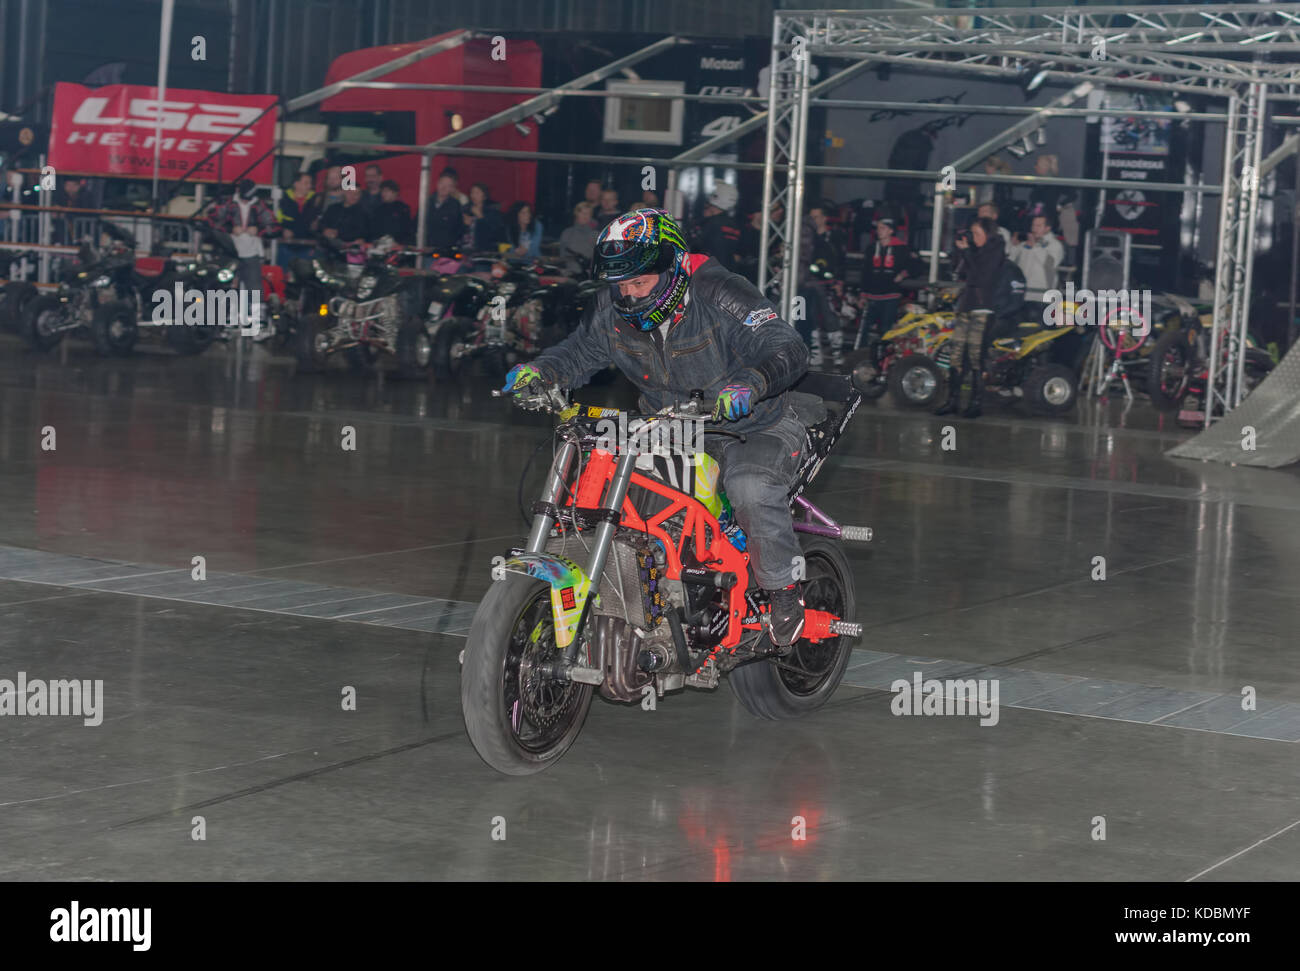 BRNO, CZECH REPUBLIC-MARCH 4,2016: Stuntman riding a motorcycle during stunt show on International Fair for Motorcycles - Stock Image